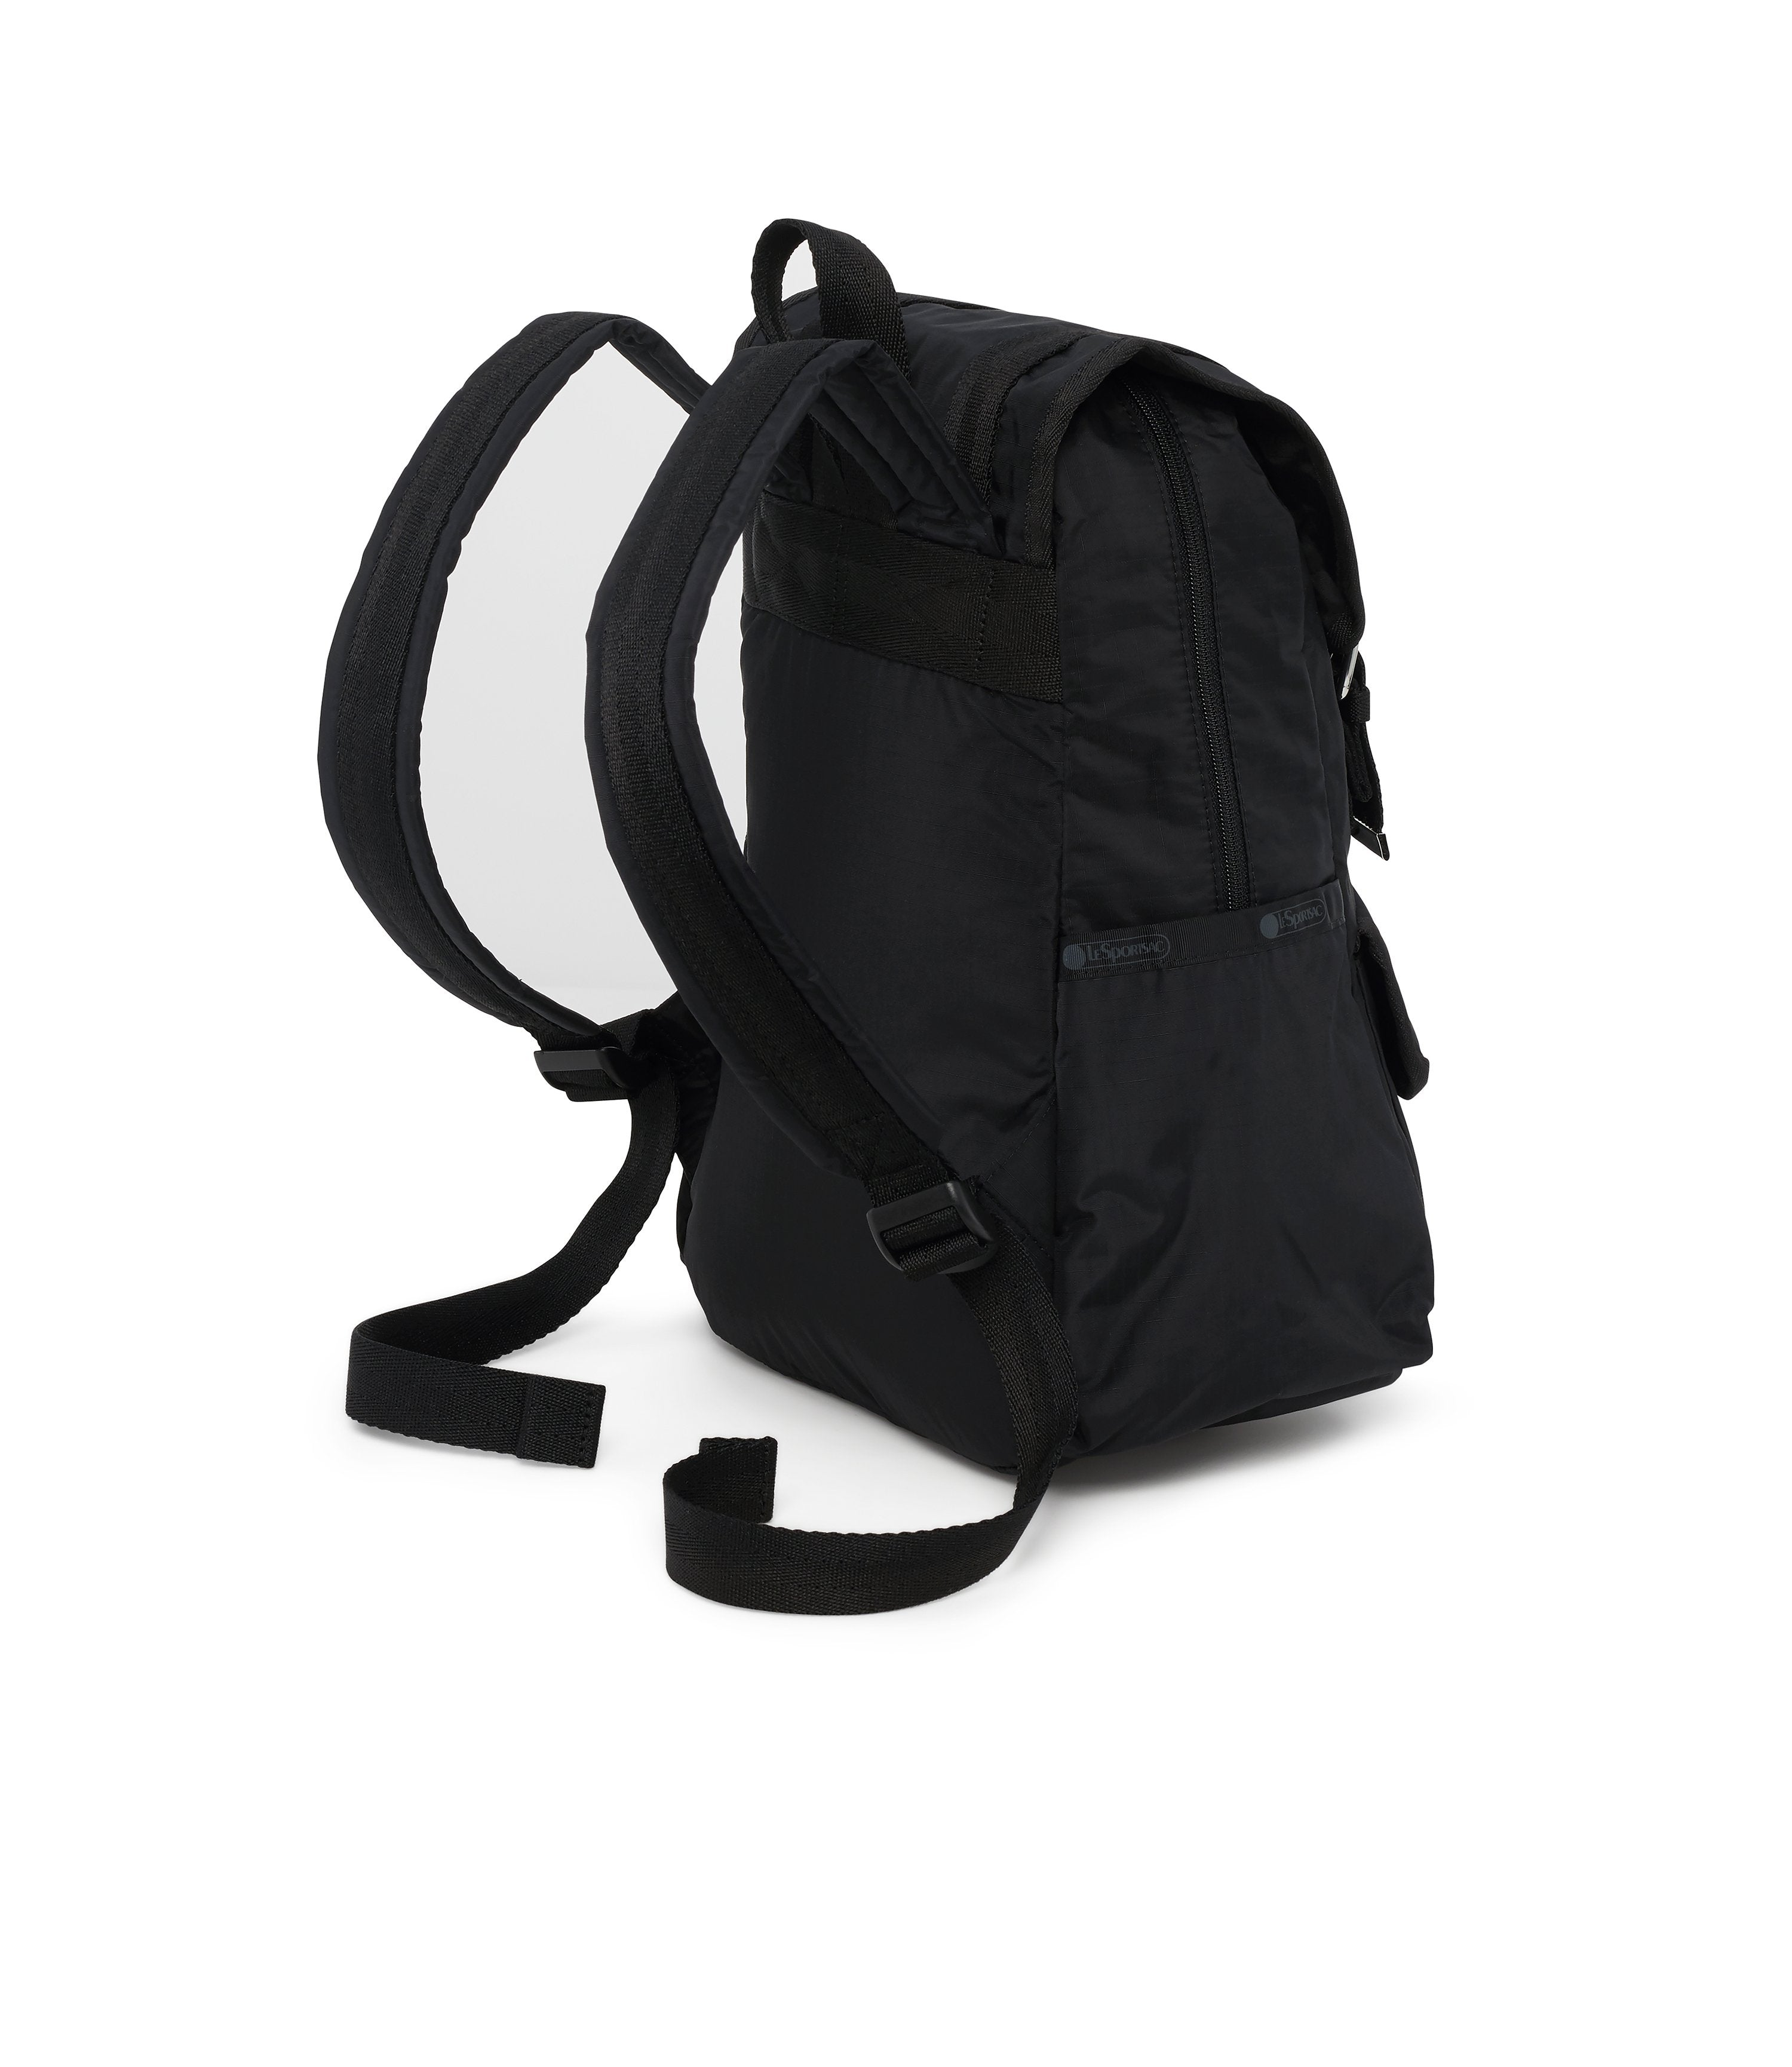 Small Adventure Backpack 2